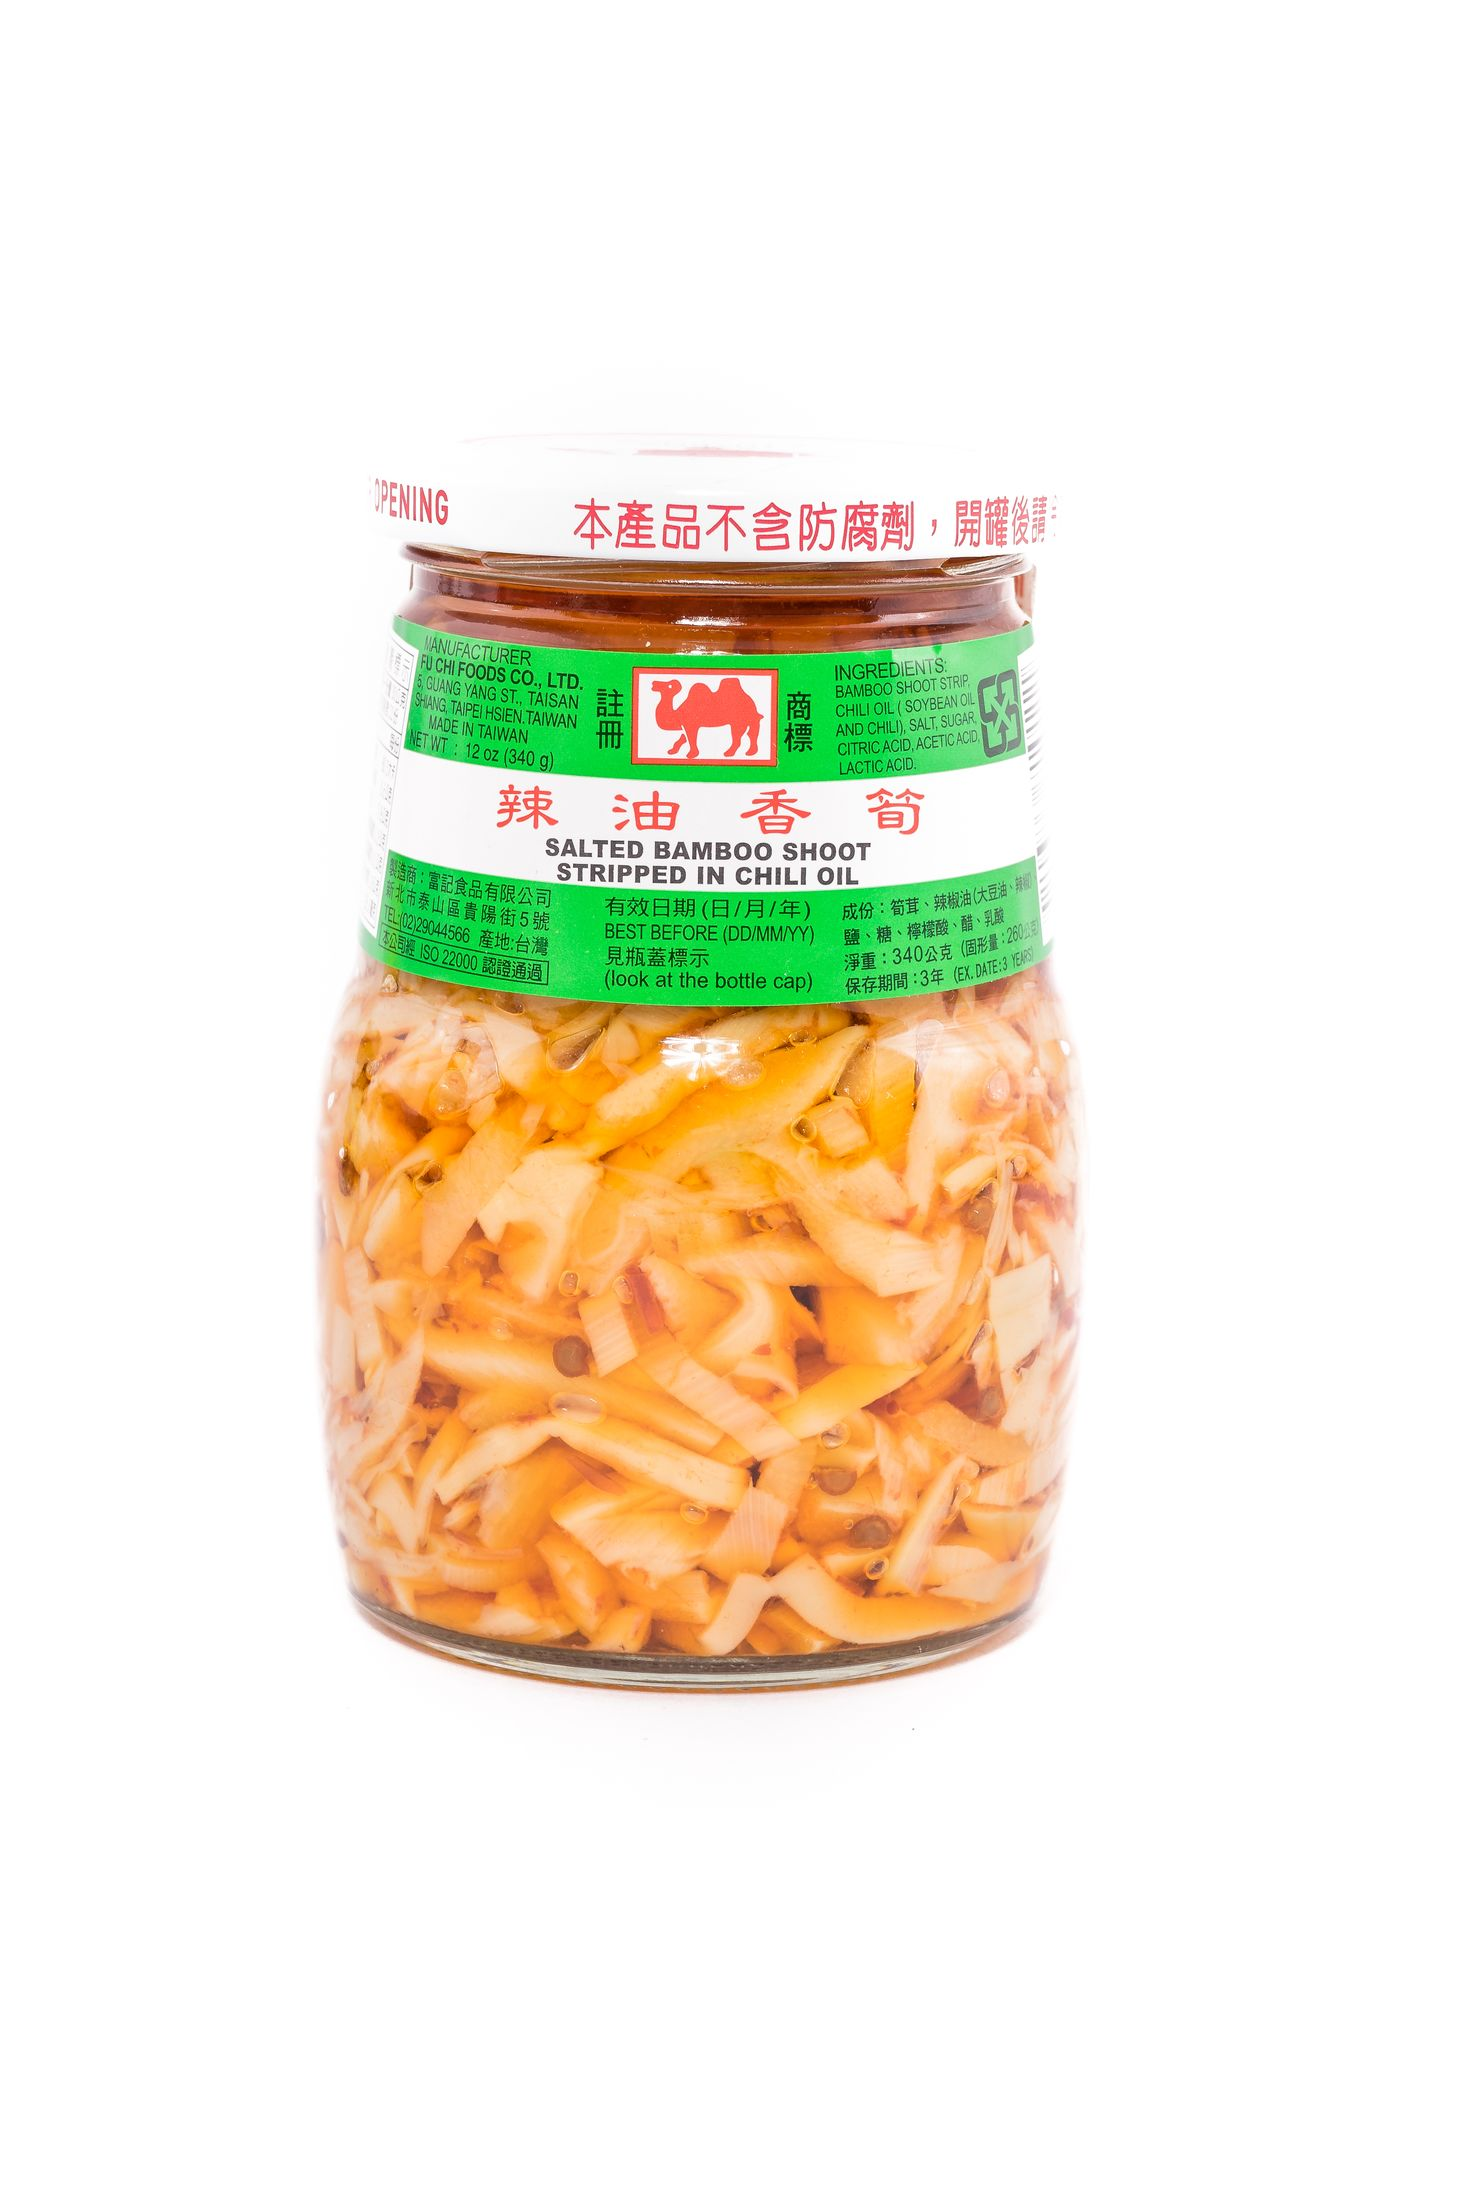 Bamboo shoot in chili oil